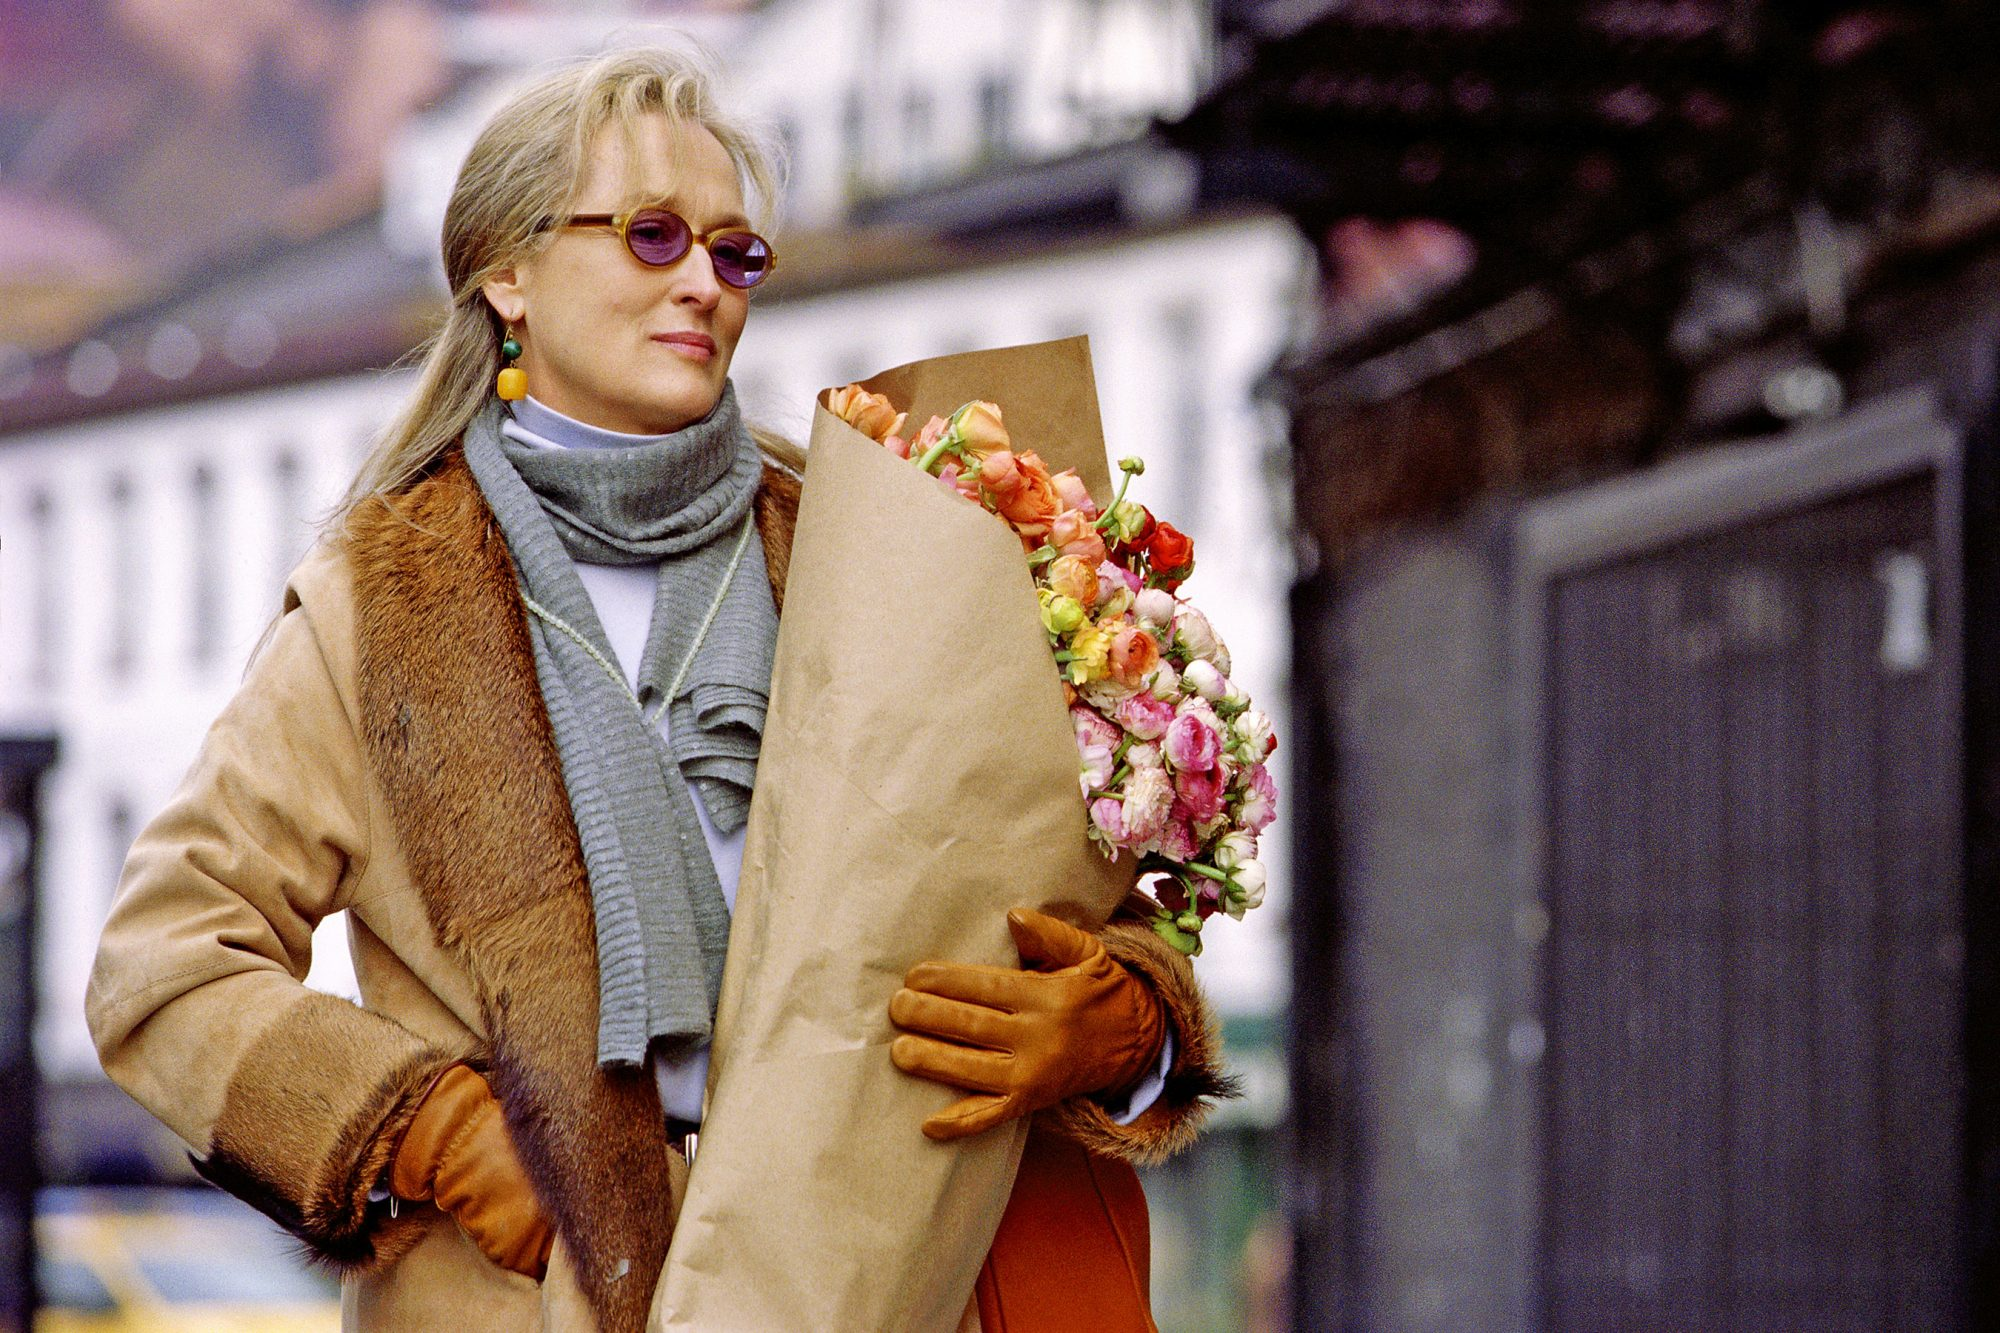 The HoursMeryl Streep2002 Paramount Pictures